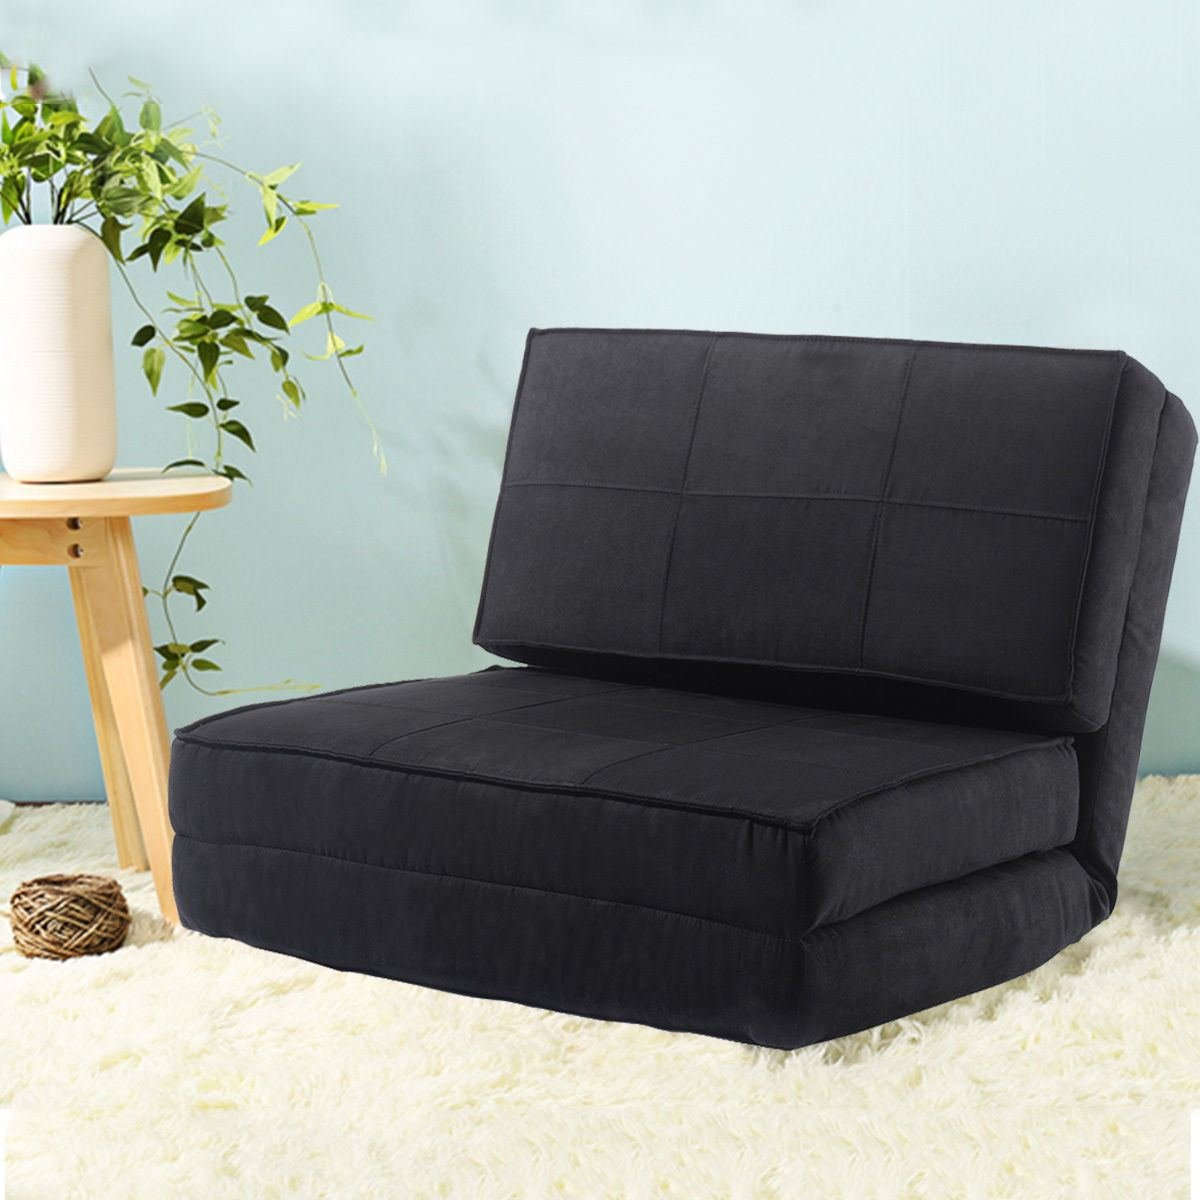 MasterPanel - Fold Down Chair Flip Out Lounger Convertible Sleeper Bed Couch Game Dorm Guest #TP3251 by MasterPanel